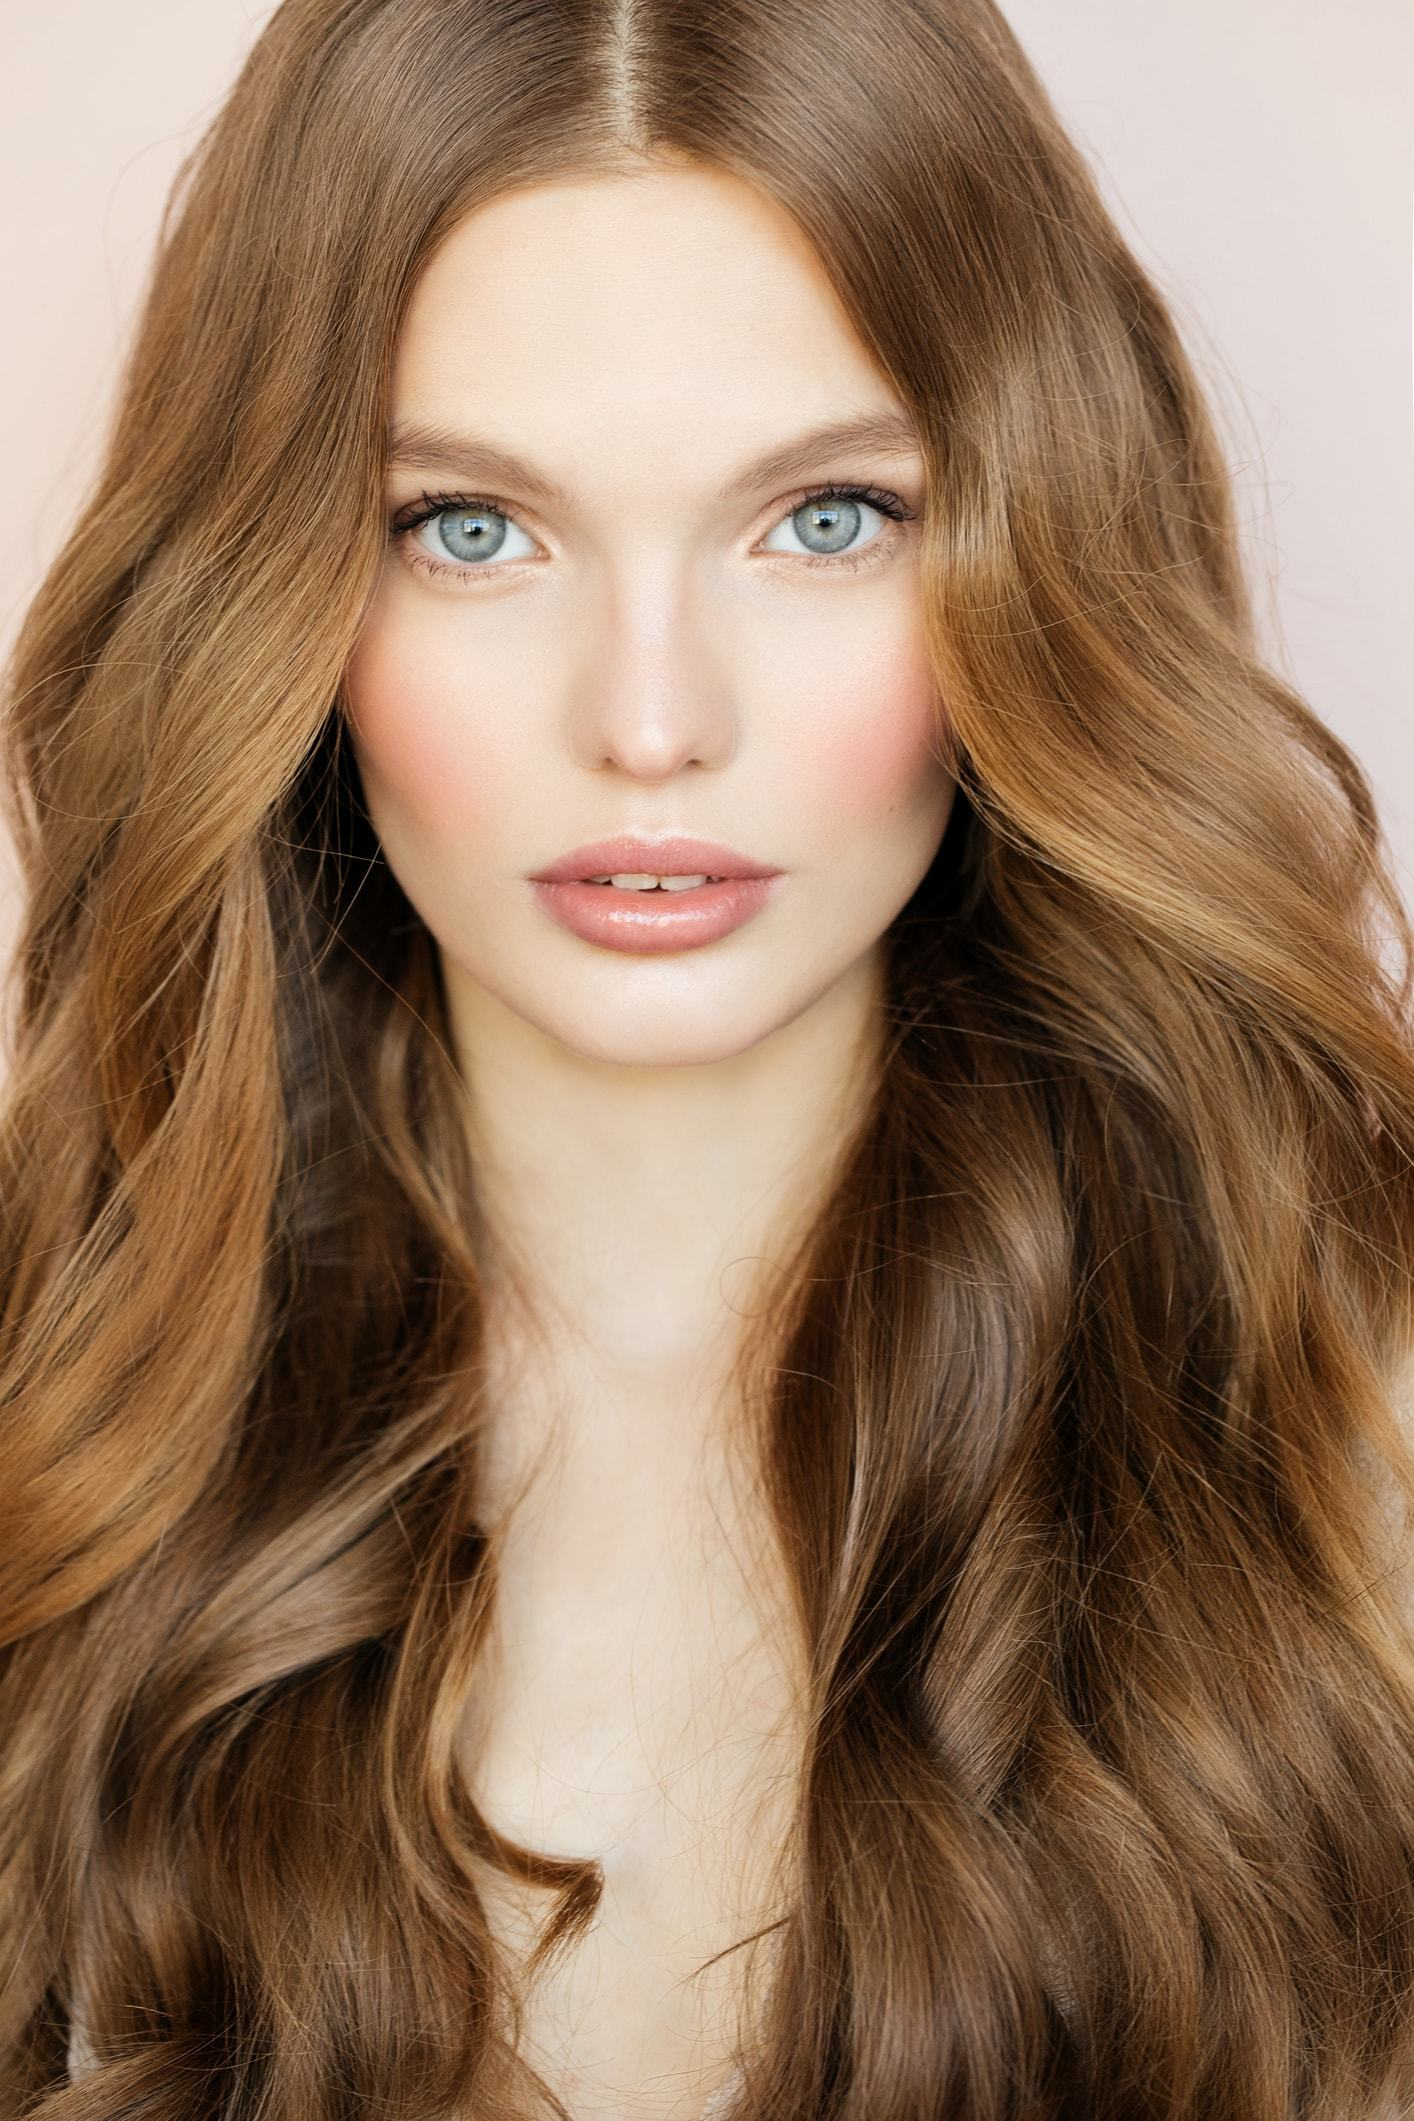 Honey Brown Hair 20 Striking Shades Perfect For The Season